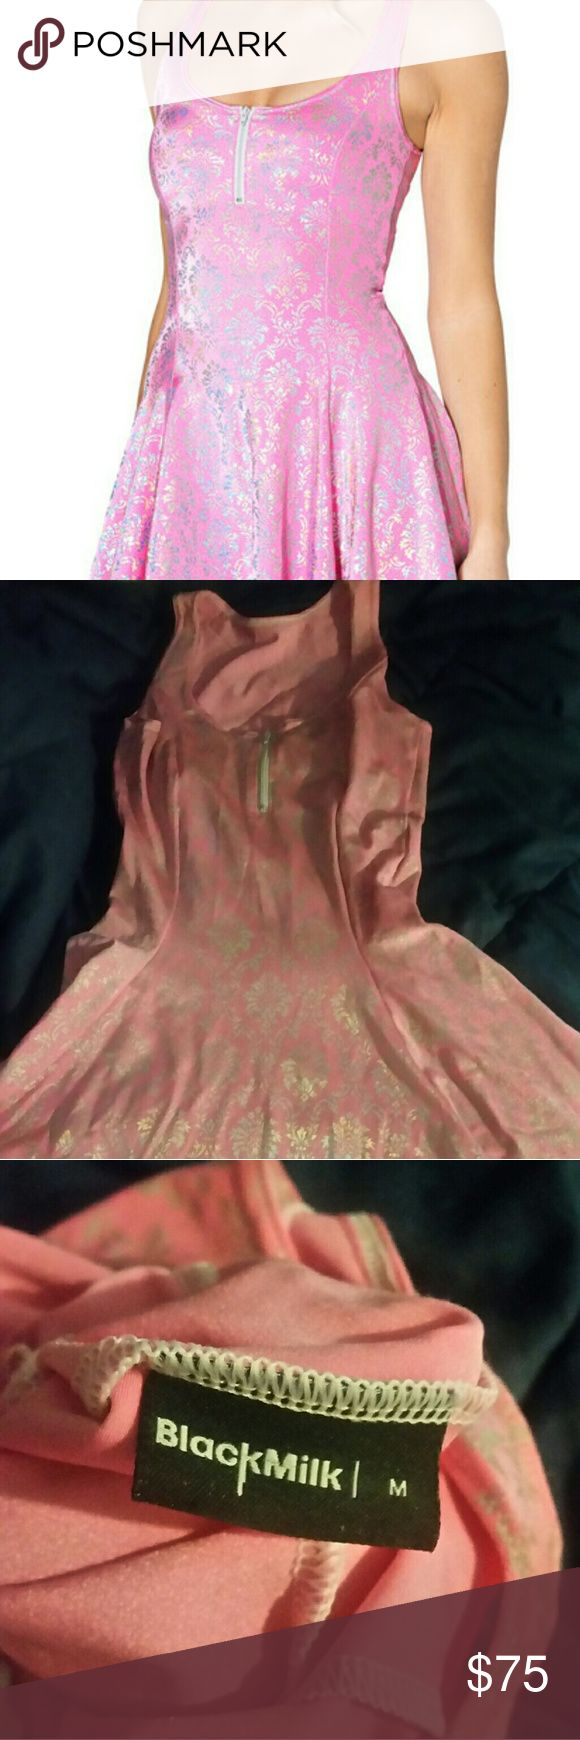 Black Milk Pink Wallpaper Zip Dress Super cute, but can be made a little sexy with the zipper down. Good condition. Make me an offer! Blackmilk Blackmilk Dresses Midi